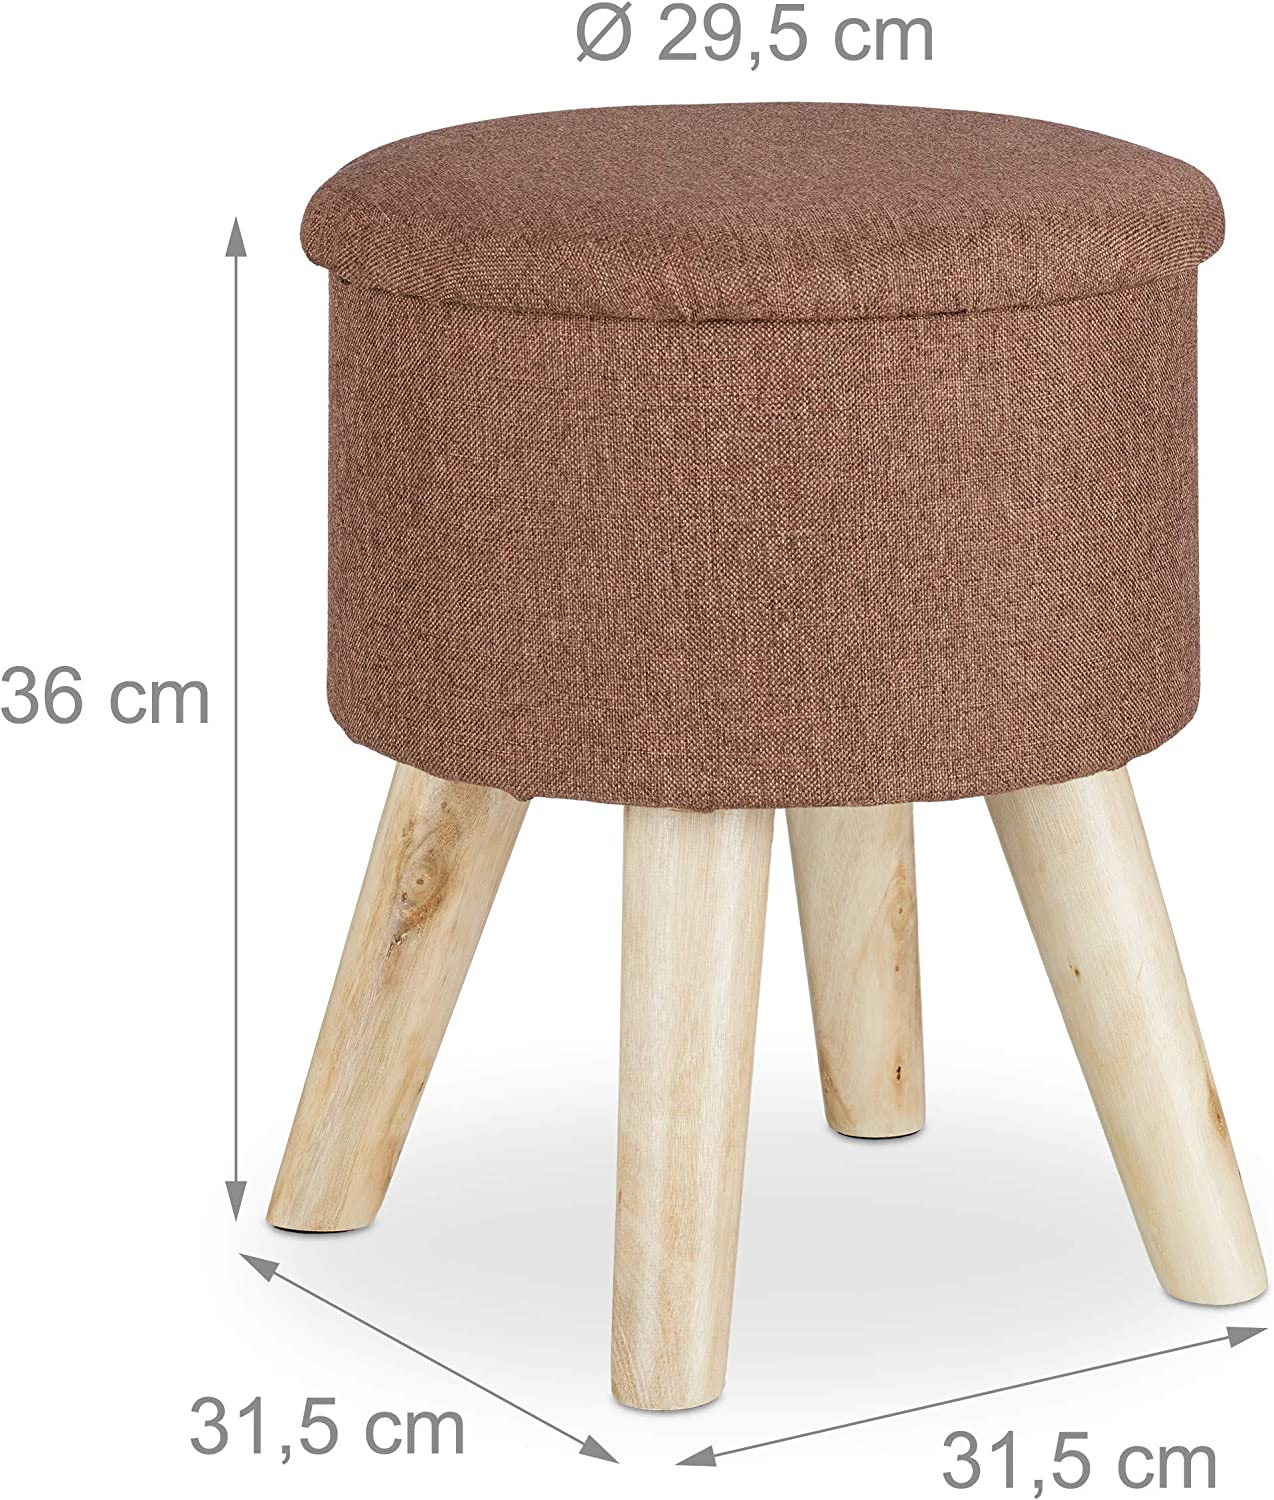 Relaxdays Round Stool with Storage Space, Padded, Removable Lid, Wooden Legs, HxWxD: 36 x 31.5 x 31.5 cm, White, Wood, One Size Brown